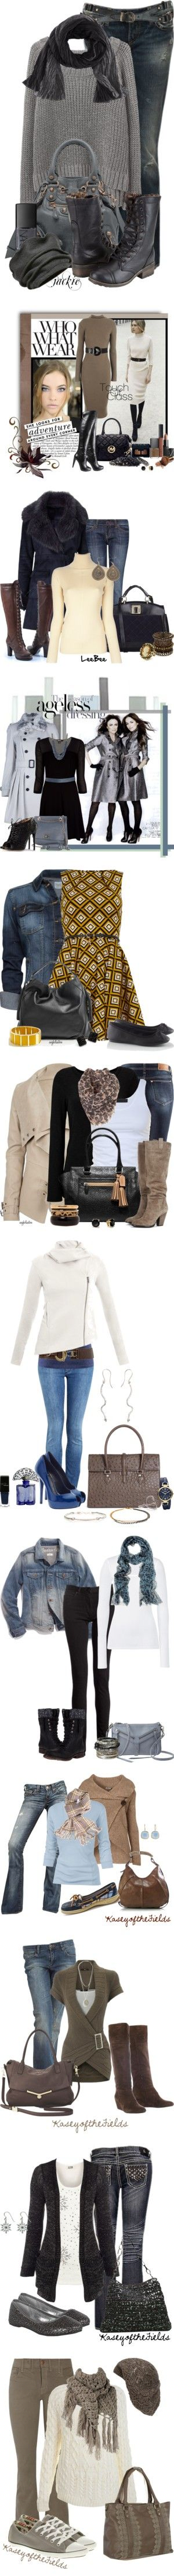 """The real me"" by djkat ❤ liked on Polyvore"